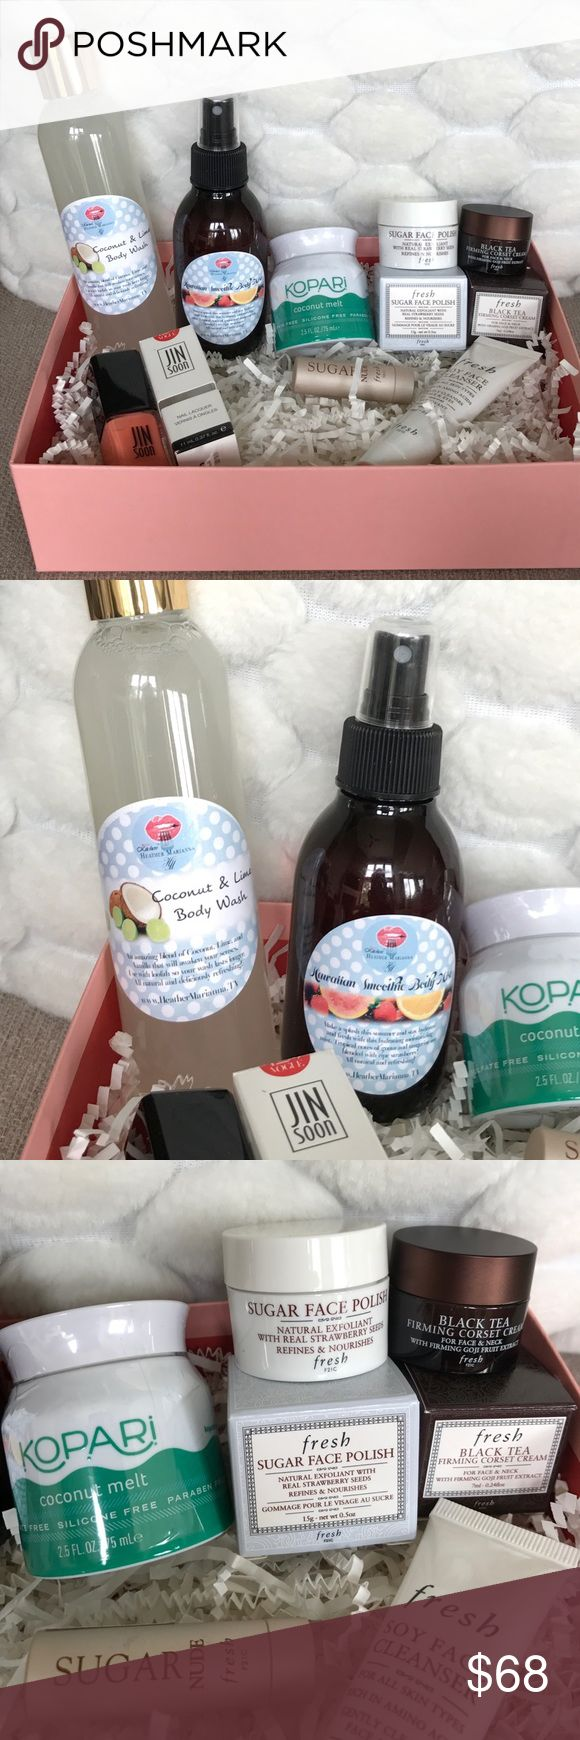 NEW 🌞SUMMER ORGANIC FRESH SKIN/BODYCARE BOX PRICE FIRM UNLESS BUNDLED🌞PLEASE NO OFFERS ON BUNDLES🌞ALL NEW Coconut&lime full size body wash & Hawaiian smoothie body mist both made straight from the beauty kitchen, KOPARI coconut melt 2.5fl.oz, FRESH sugar strawberry 🍓 natural exfoliant face scrub, FRESH black tea ☕️ firming corset cream, FRESH sugar nude tinted lip treatment SPF15, FRESH soy face cleanser, JIN SOON full size nail polish In Vogue rose. DONT MISS OUT ON THIS AMAZING LOT! SO…